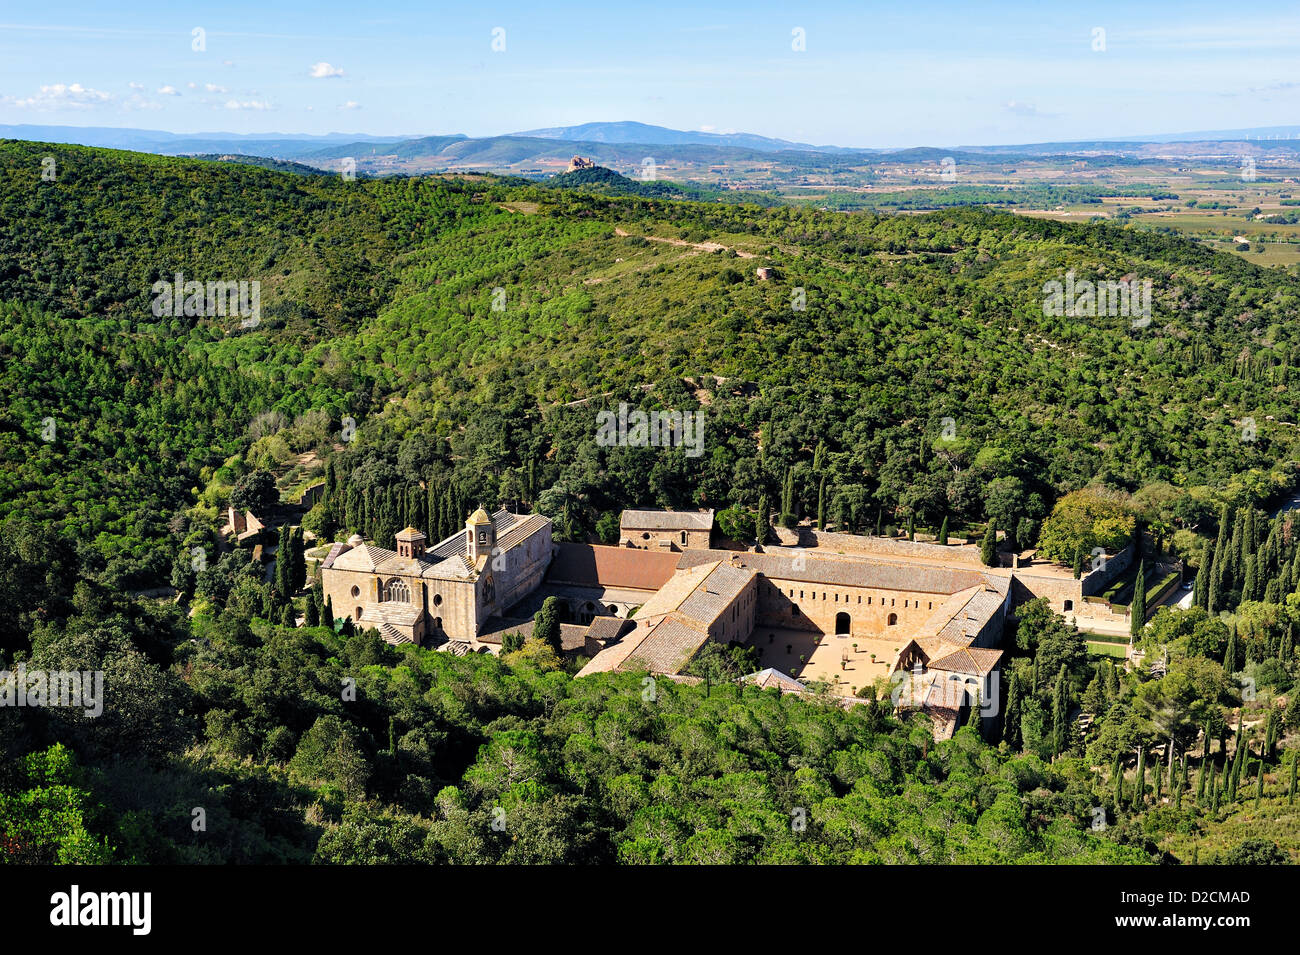 Fontfroide abbey, France. - Stock Image